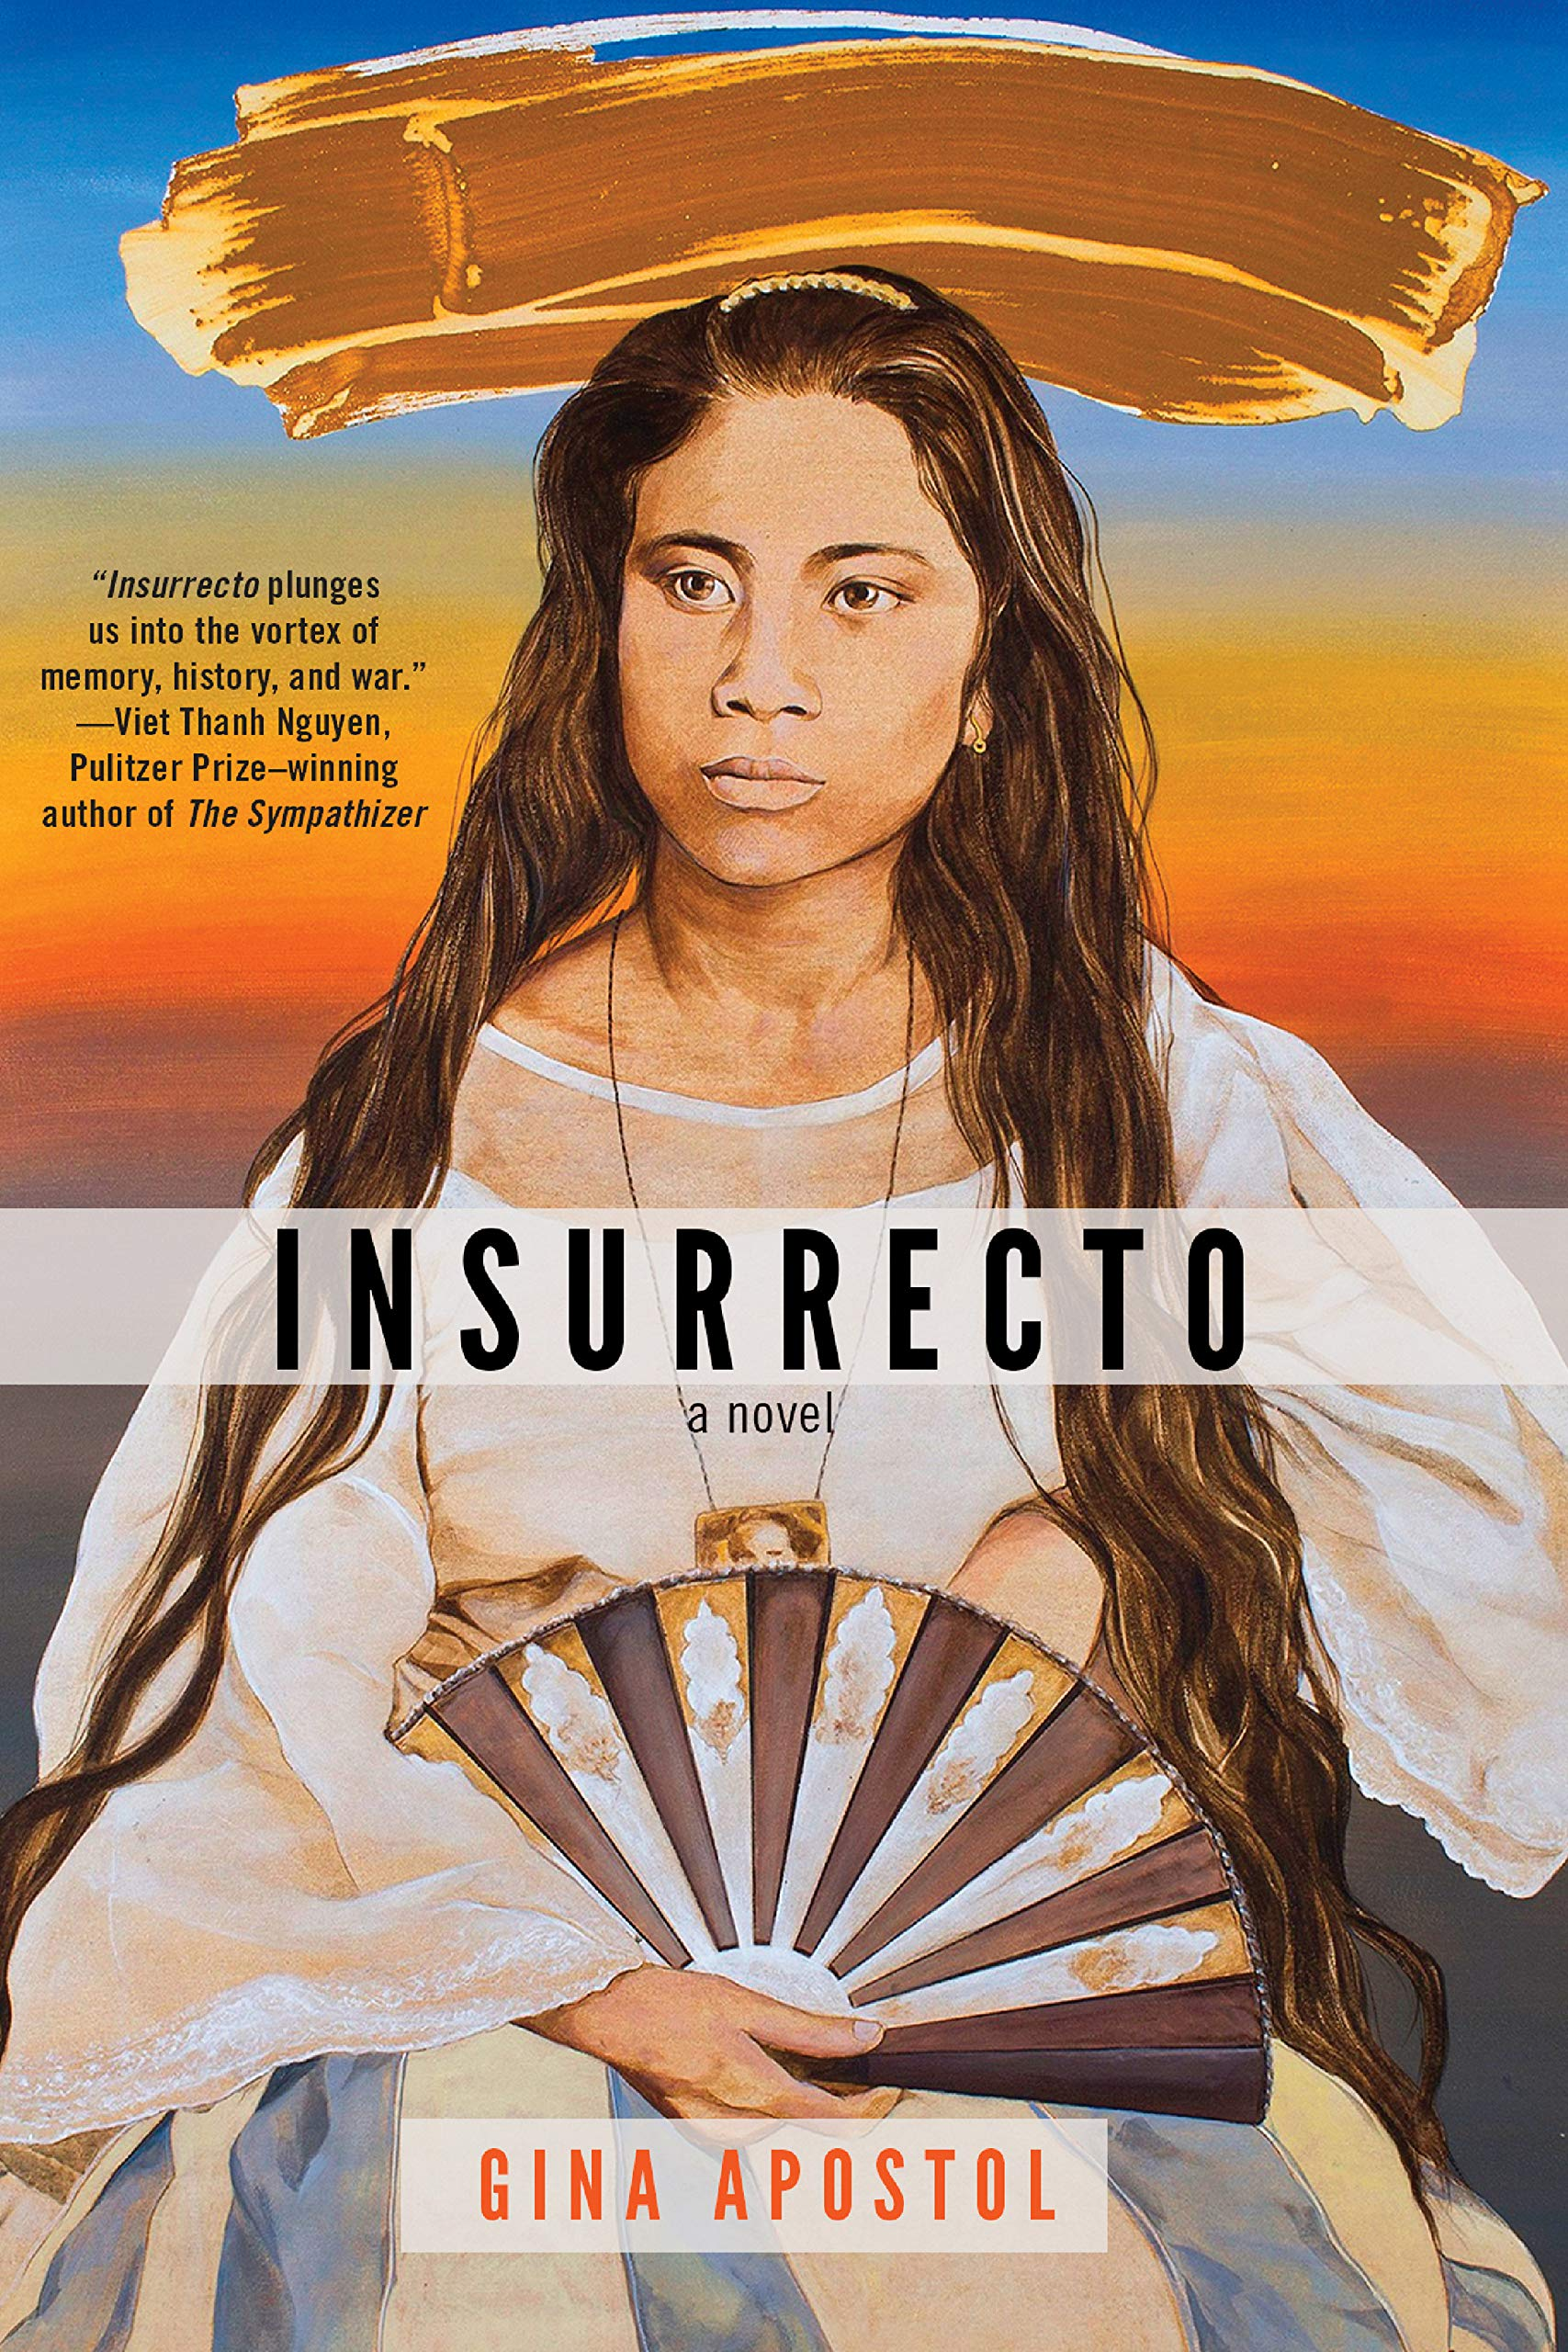 Image result for insurrecto gina apostol book cover